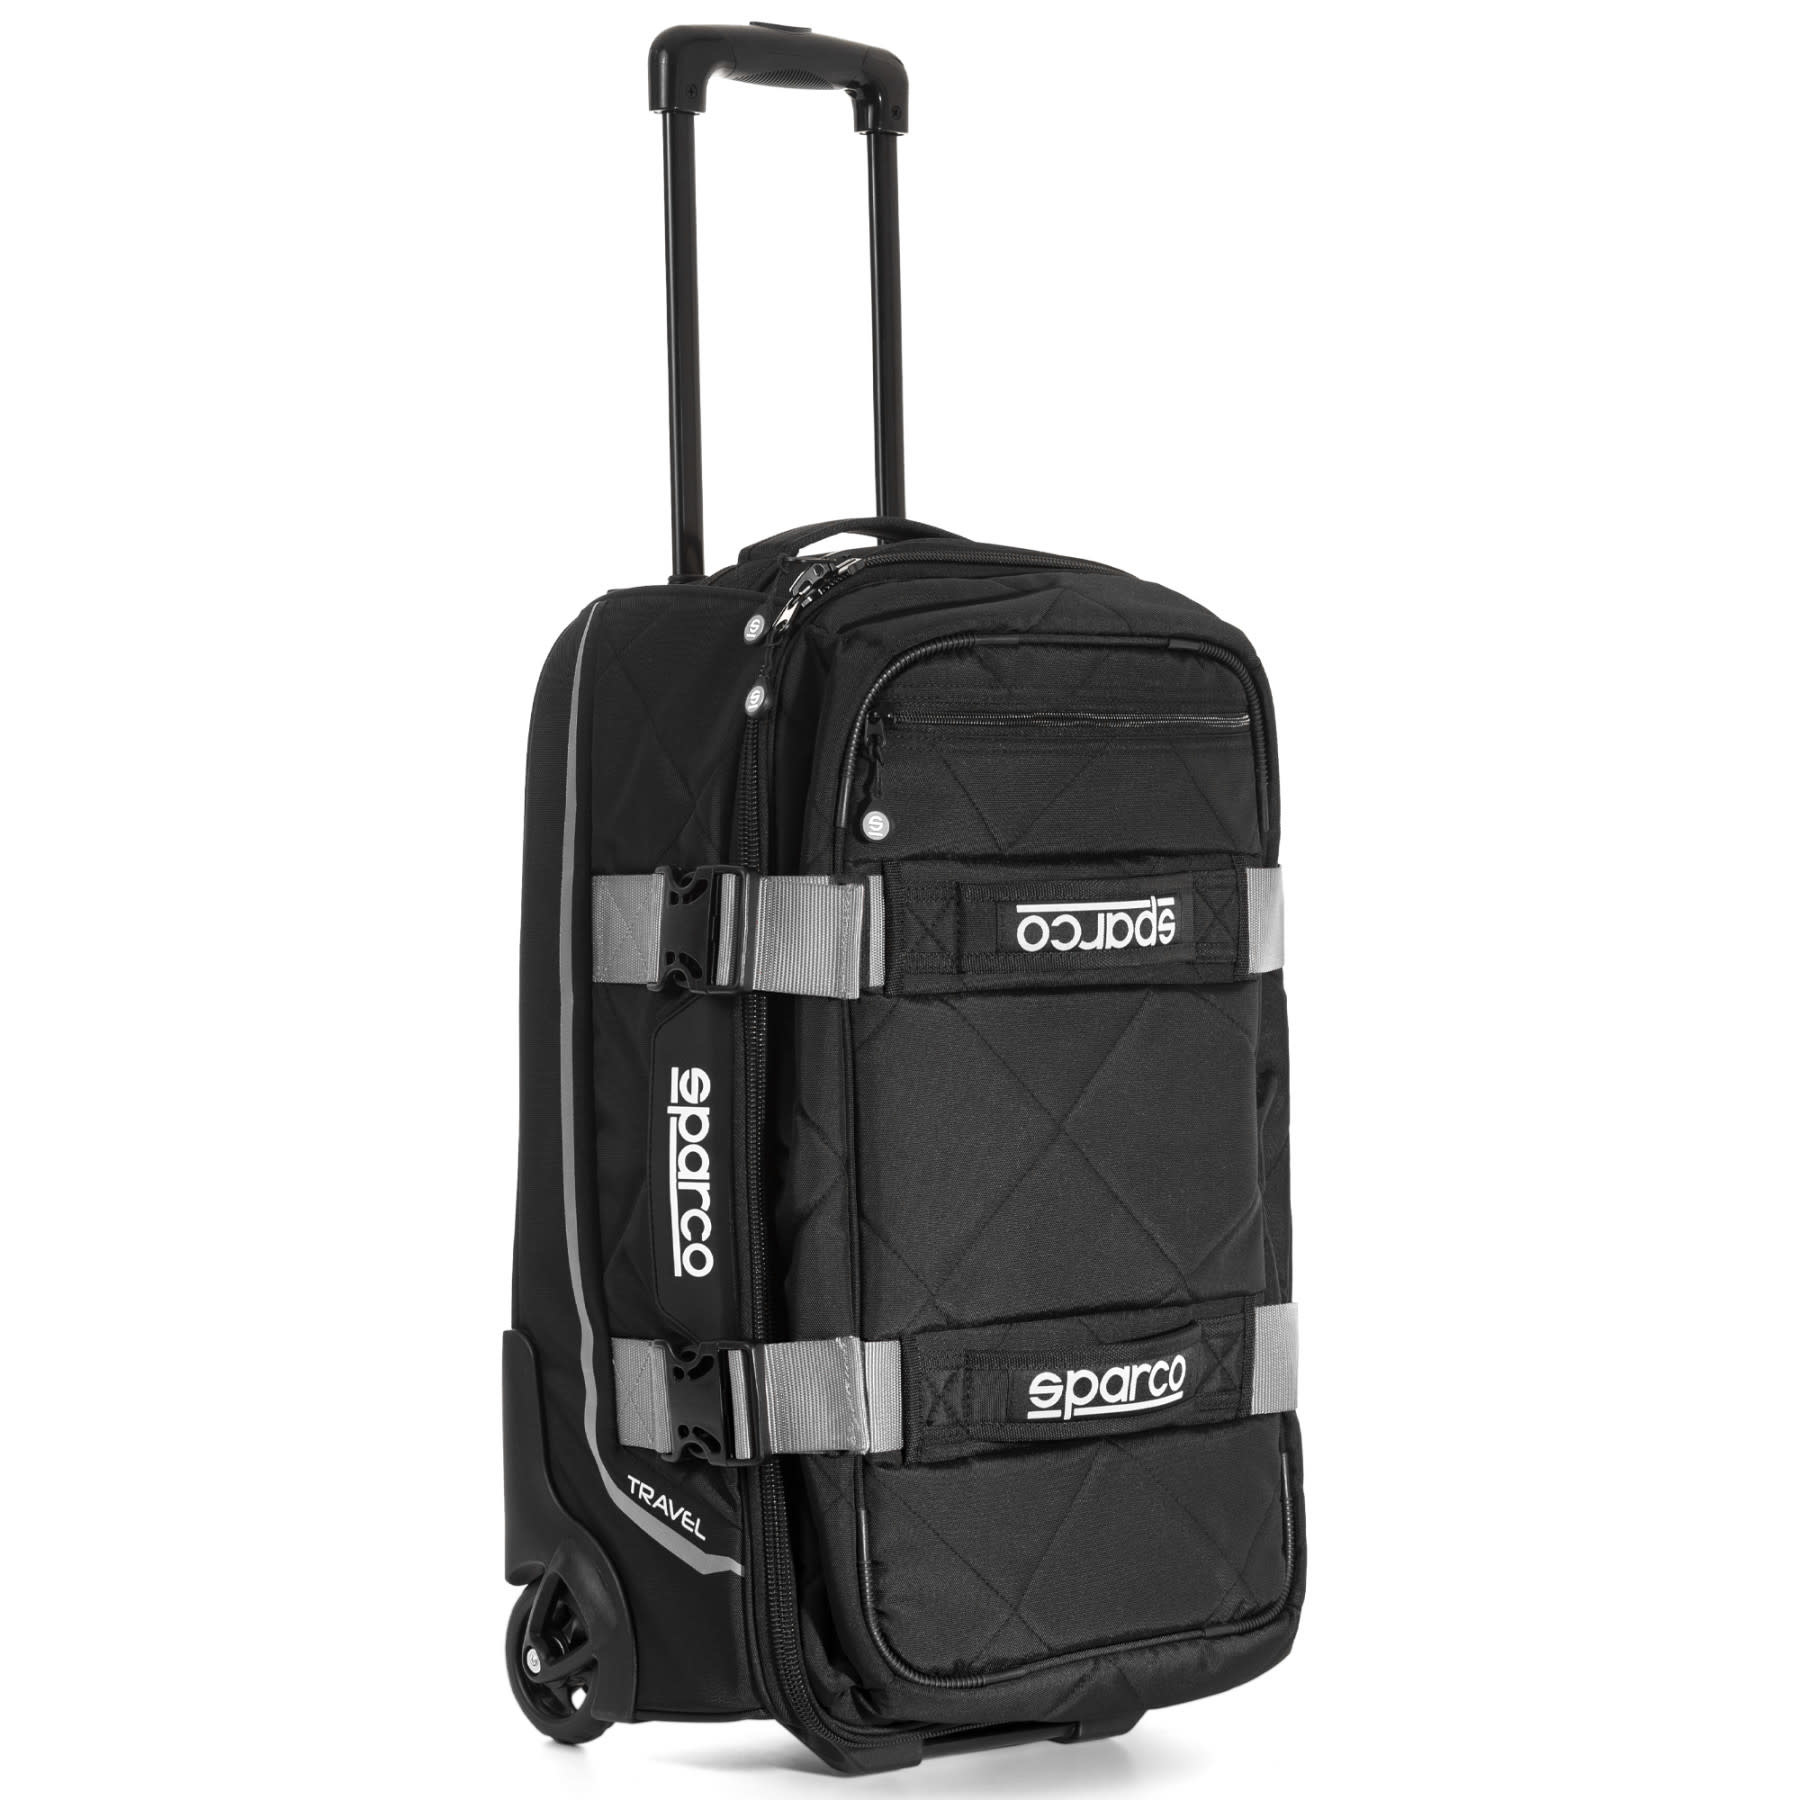 Sparco Travel Soft Cabin size Trolley Black Silver